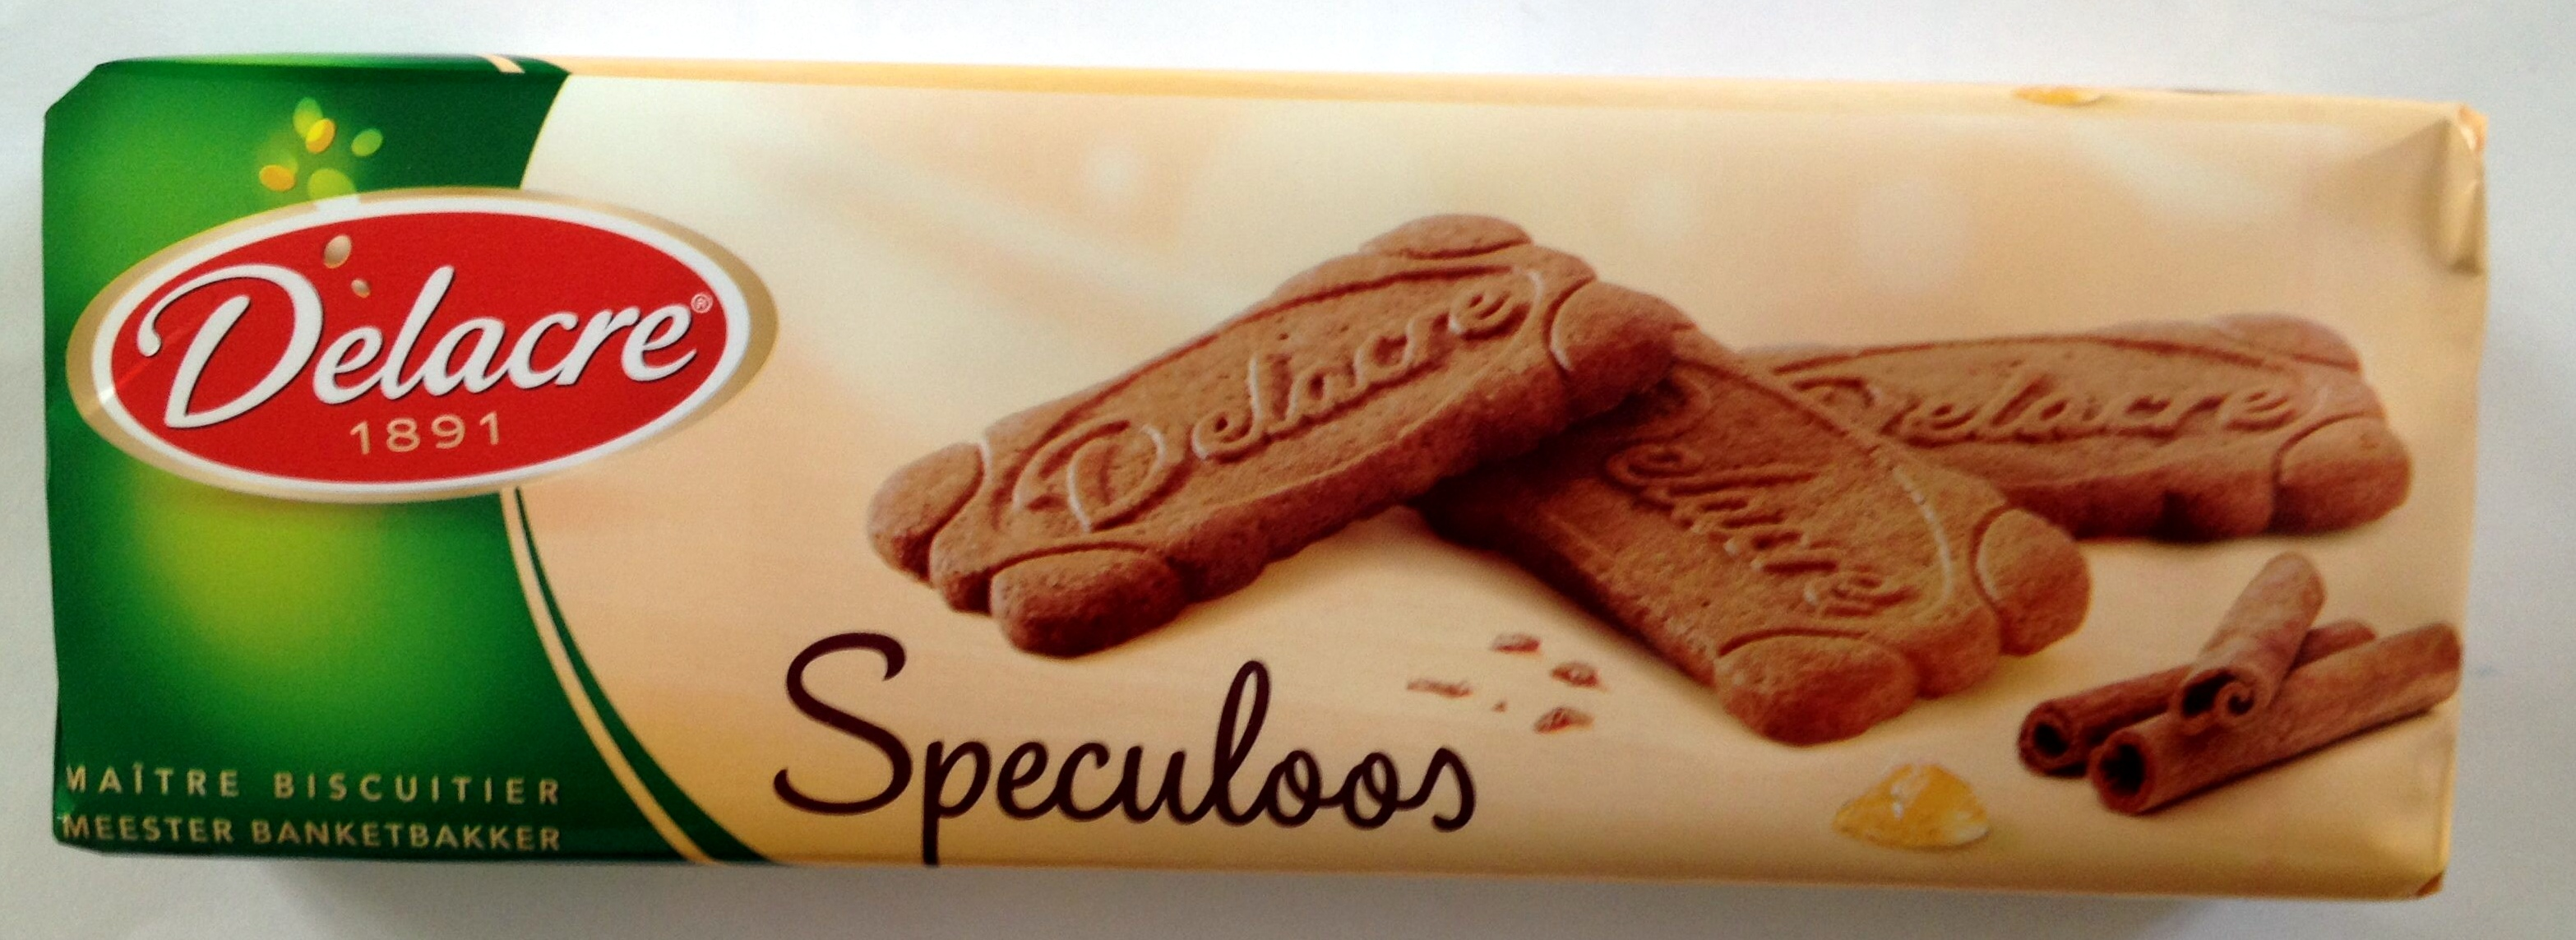 speculoos composition